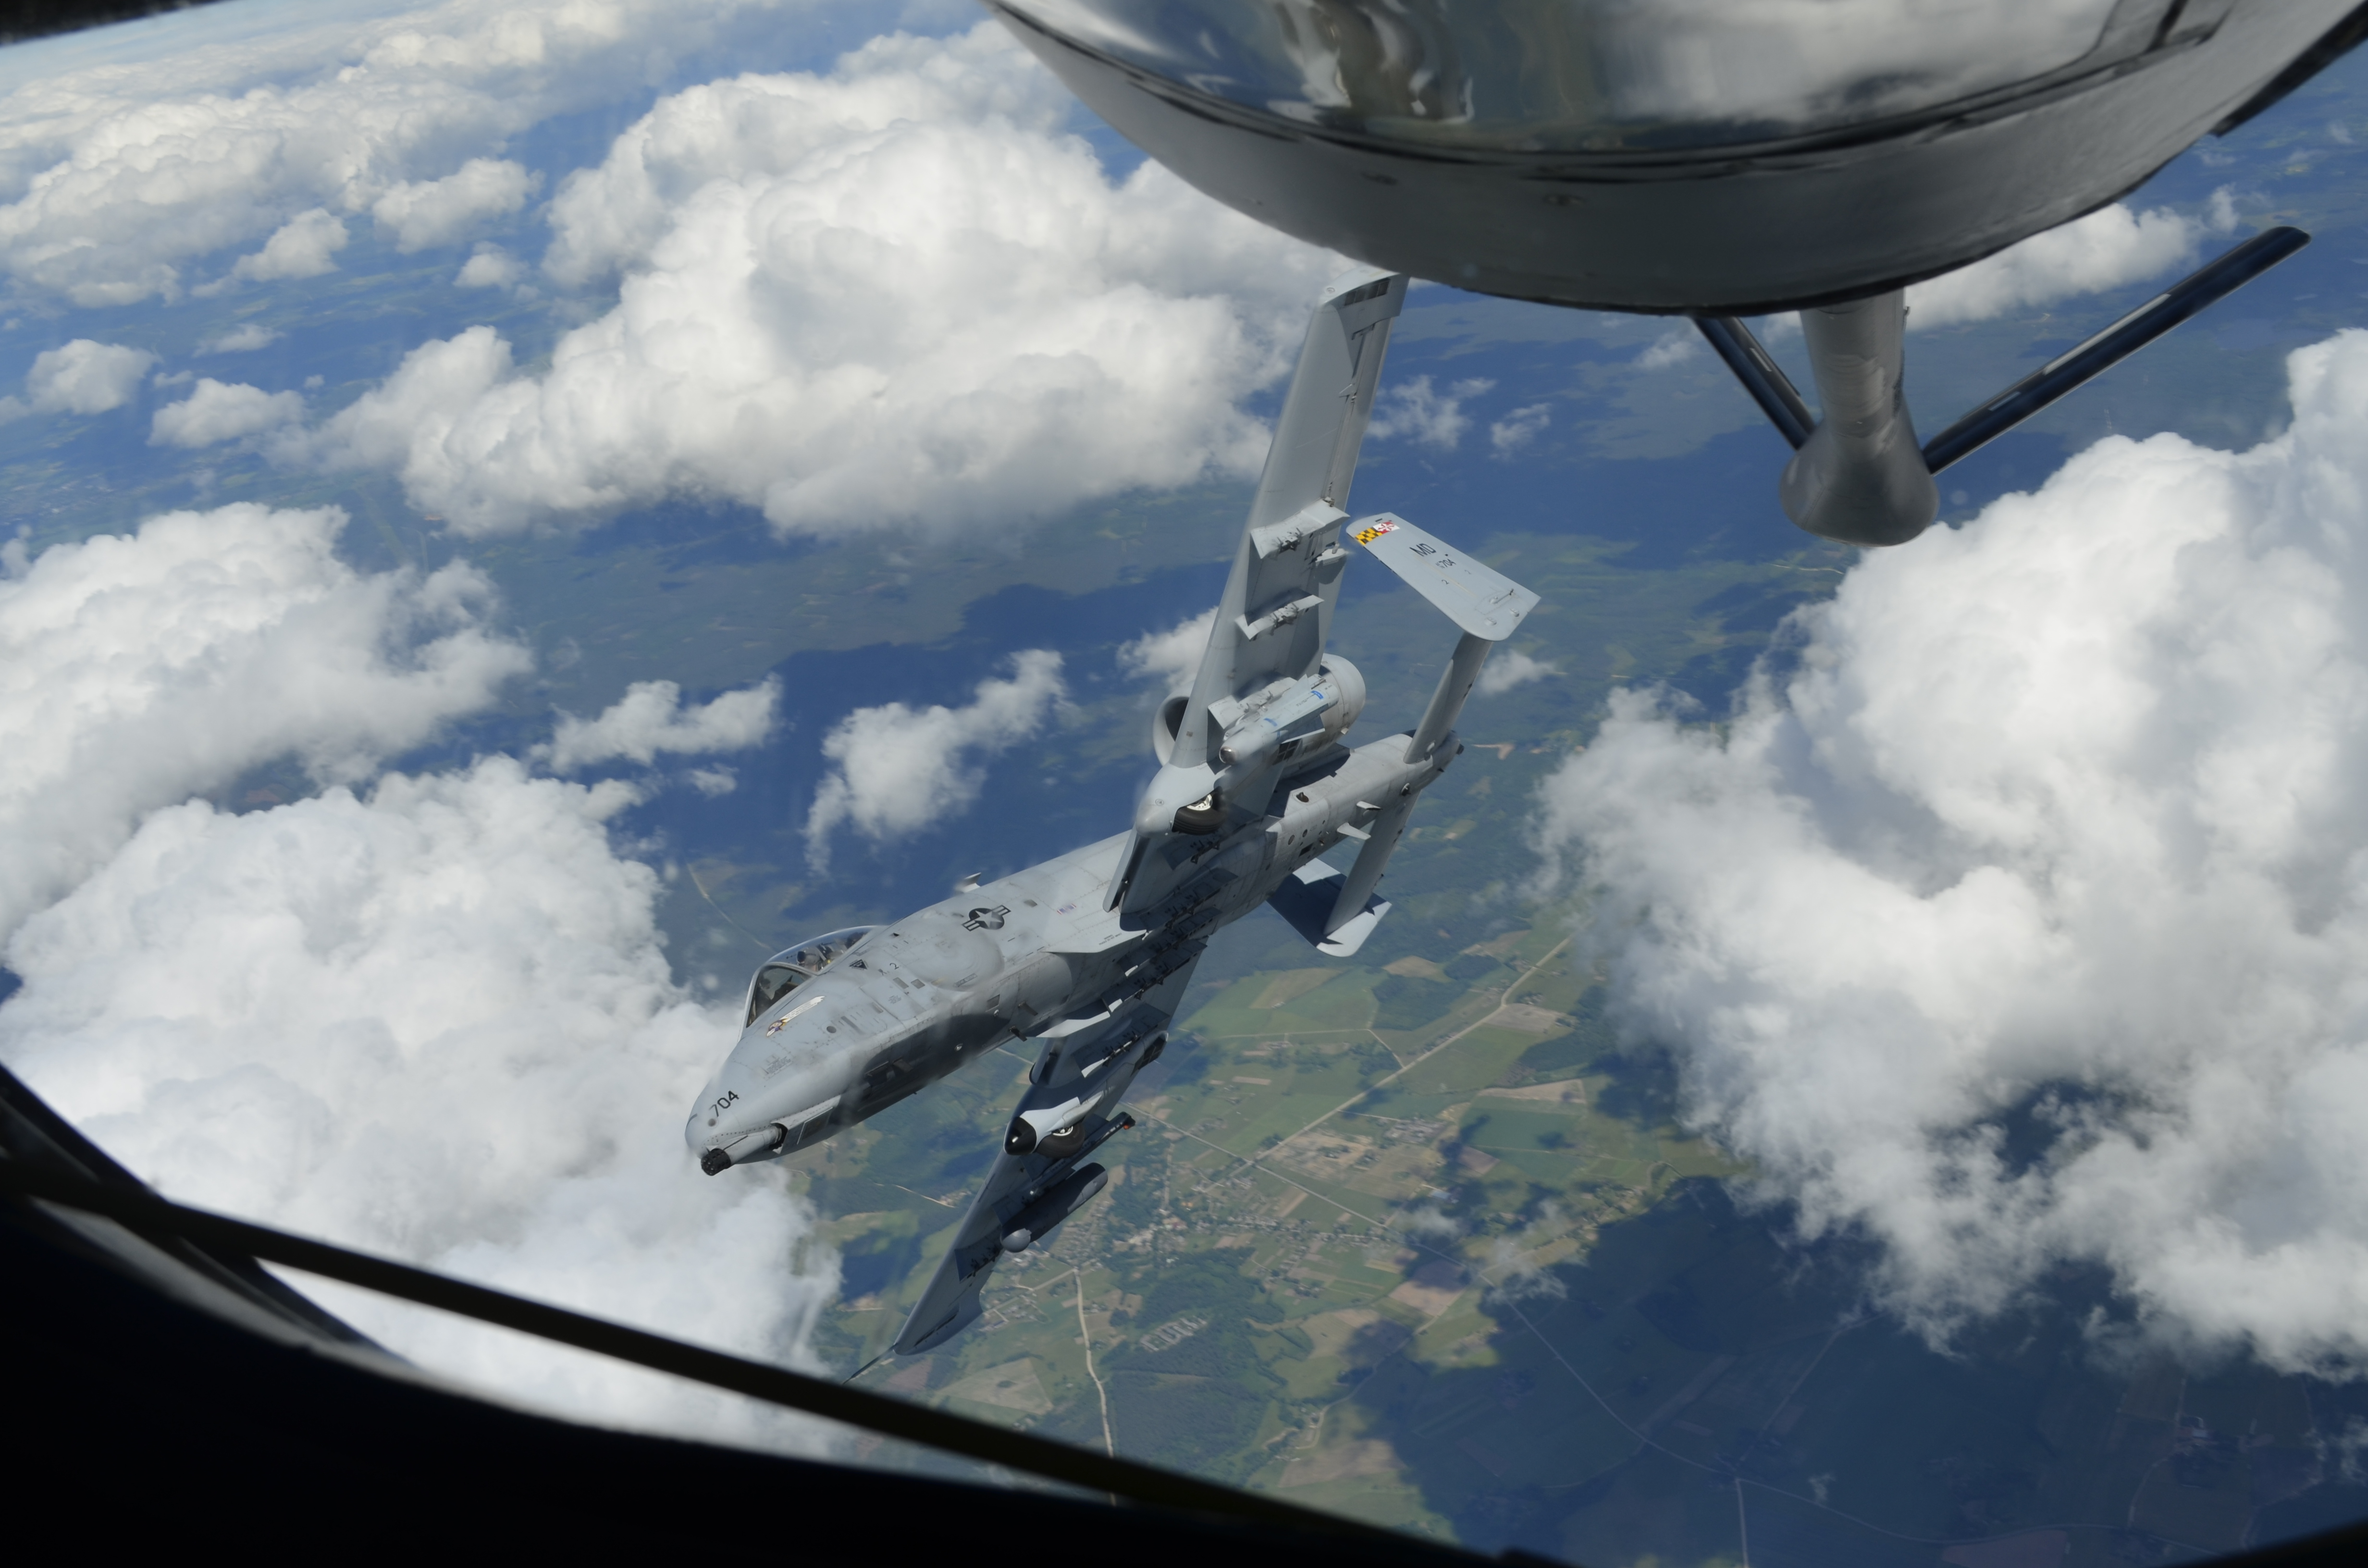 A Maryland Air National Guard A-10 Thunderbolt II peels off shortly after being refueled by Master Sgt. Joseph LaPinta, 171st Air Refueling Squadron boom operator, in a Michigan Air National Guard KC-135 Stratotanker during Saber Strike 2015. Exercise Saber Strike 2015 has brought 14 ally and partner nations together to increase interoperability between military forces. The Michigan National Guard is a part of a Department of Defense sponsored State Partnership Program between Michigan and the Latvian government, which began in 1993. (U.S. Air National Guard photo by Capt. Anthony J. Lesterson)